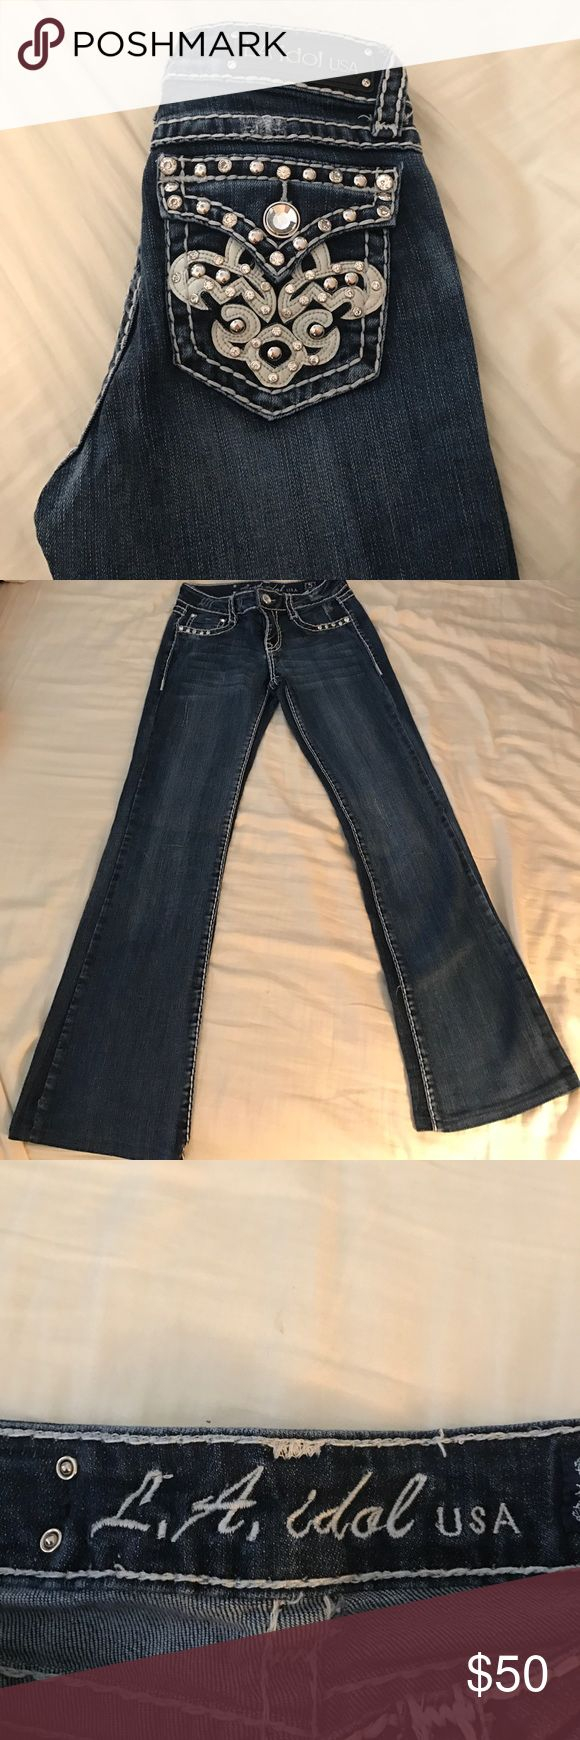 LA Idol denim jeans LA Idol jeans with thick white threads Jeans Flare & Wide Leg